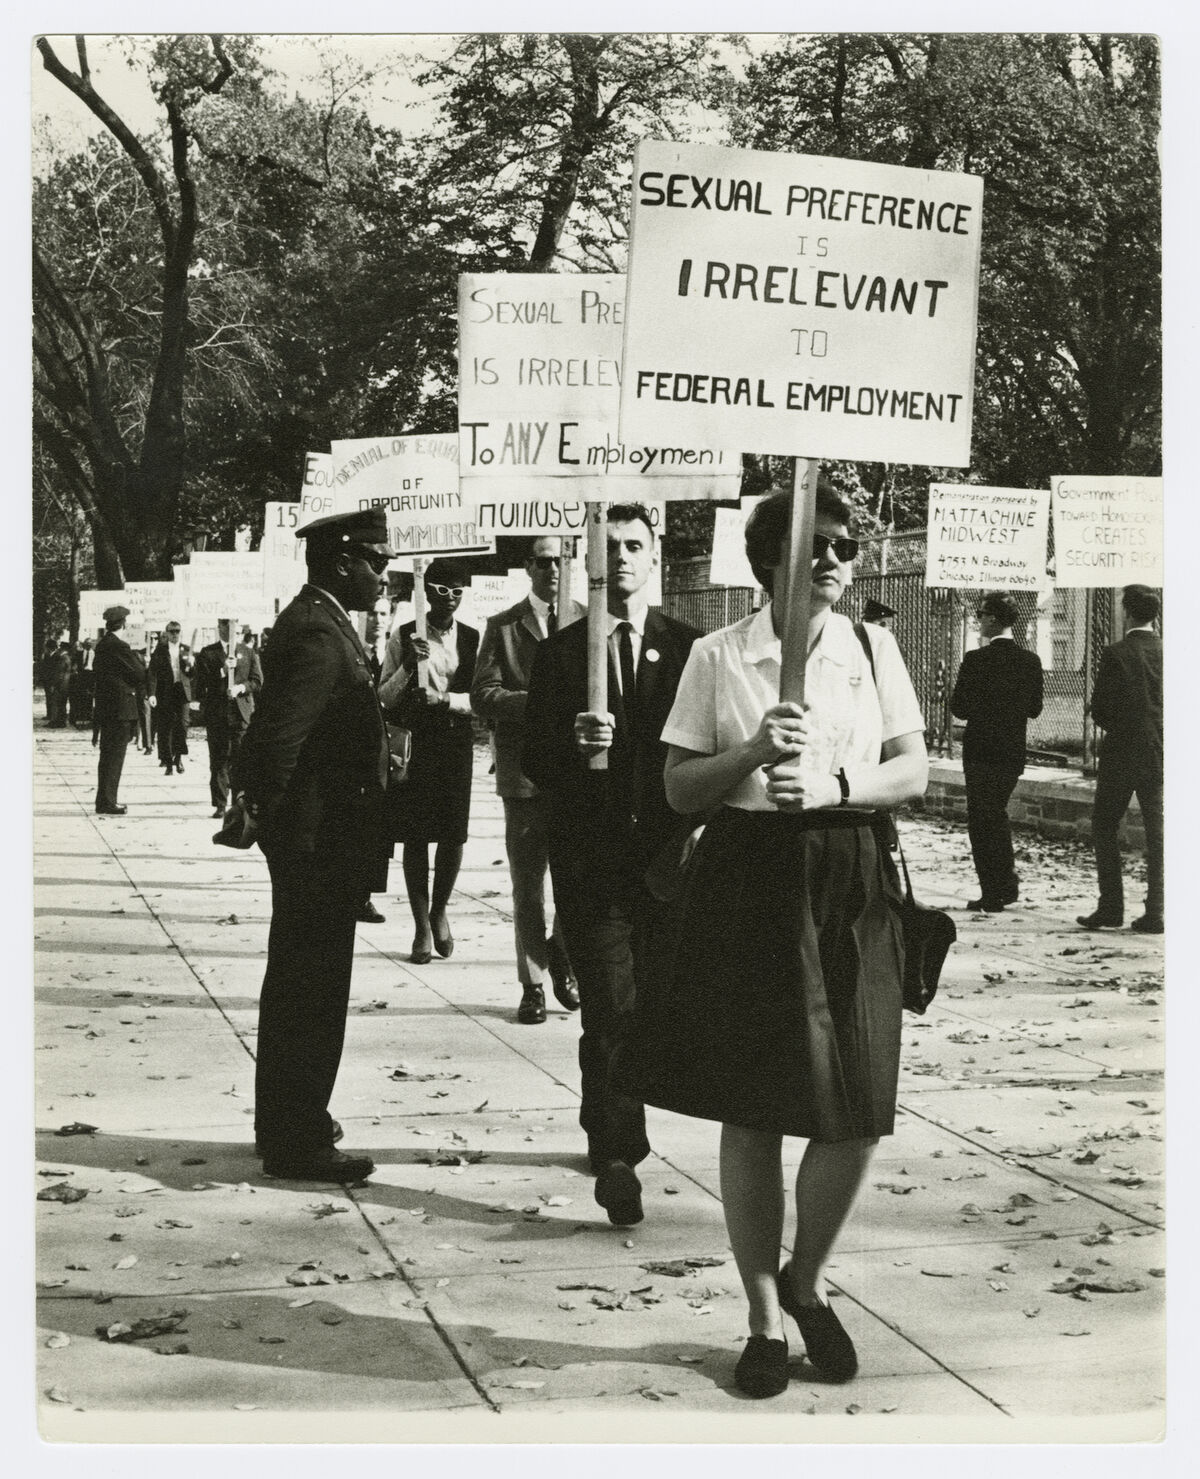 Kay Tobin Lahusen, Barbara Gittings at Third White House picket, 1965. Courtesy of New York Public Library, Manuscripts and Archives Division.